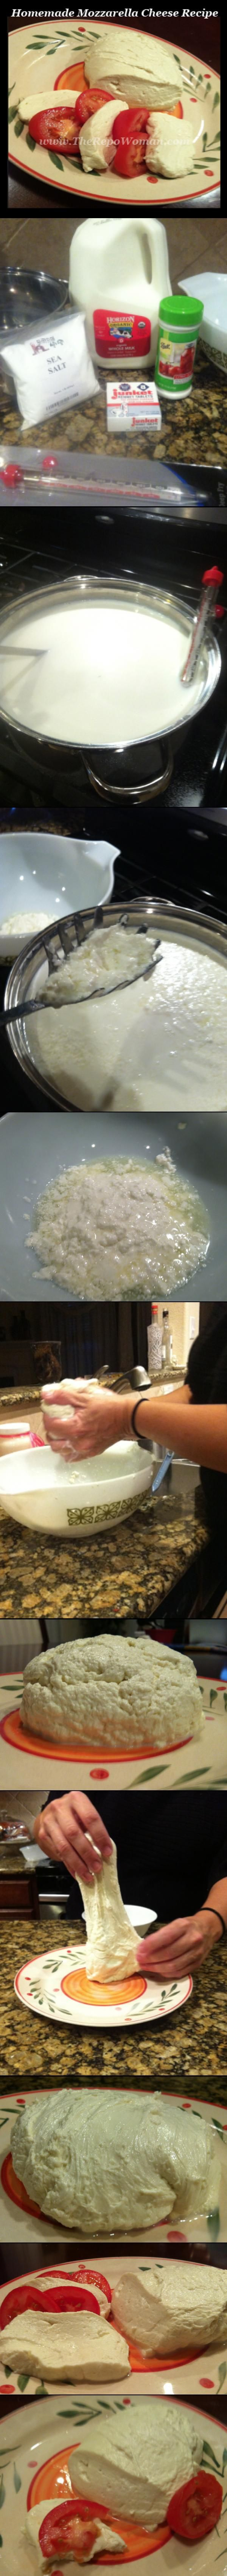 Homemade Mozzarella Cheese is easy to make!  Try it!  I DID!  I will never buy it again!